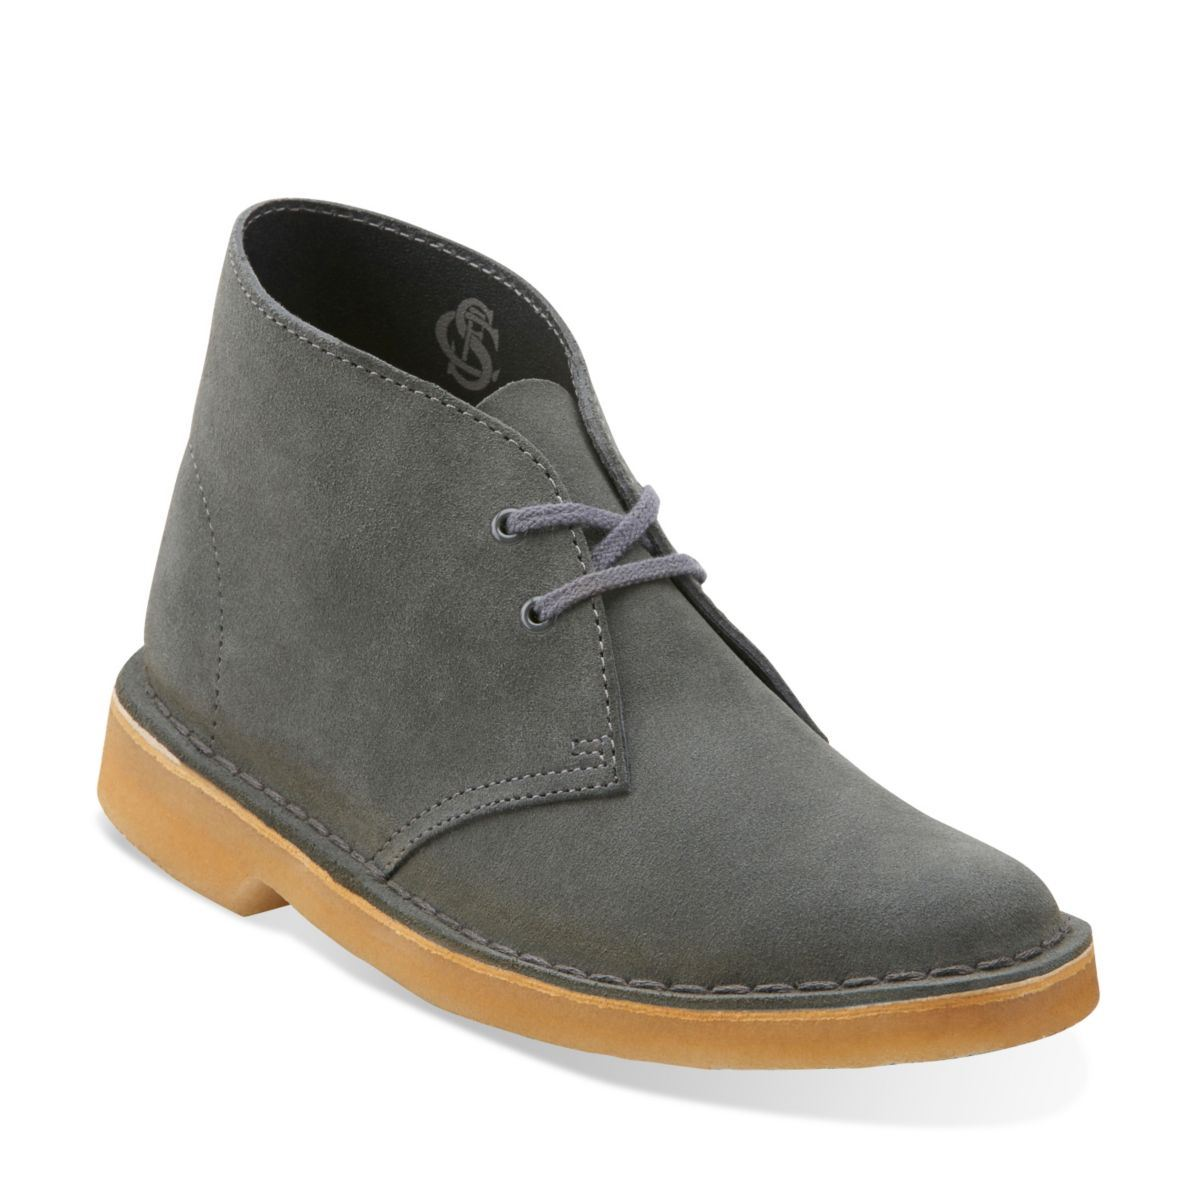 Amazing Clarks Desert Boot Slate Blue Tags Clarks Originals Slate Blue Desert